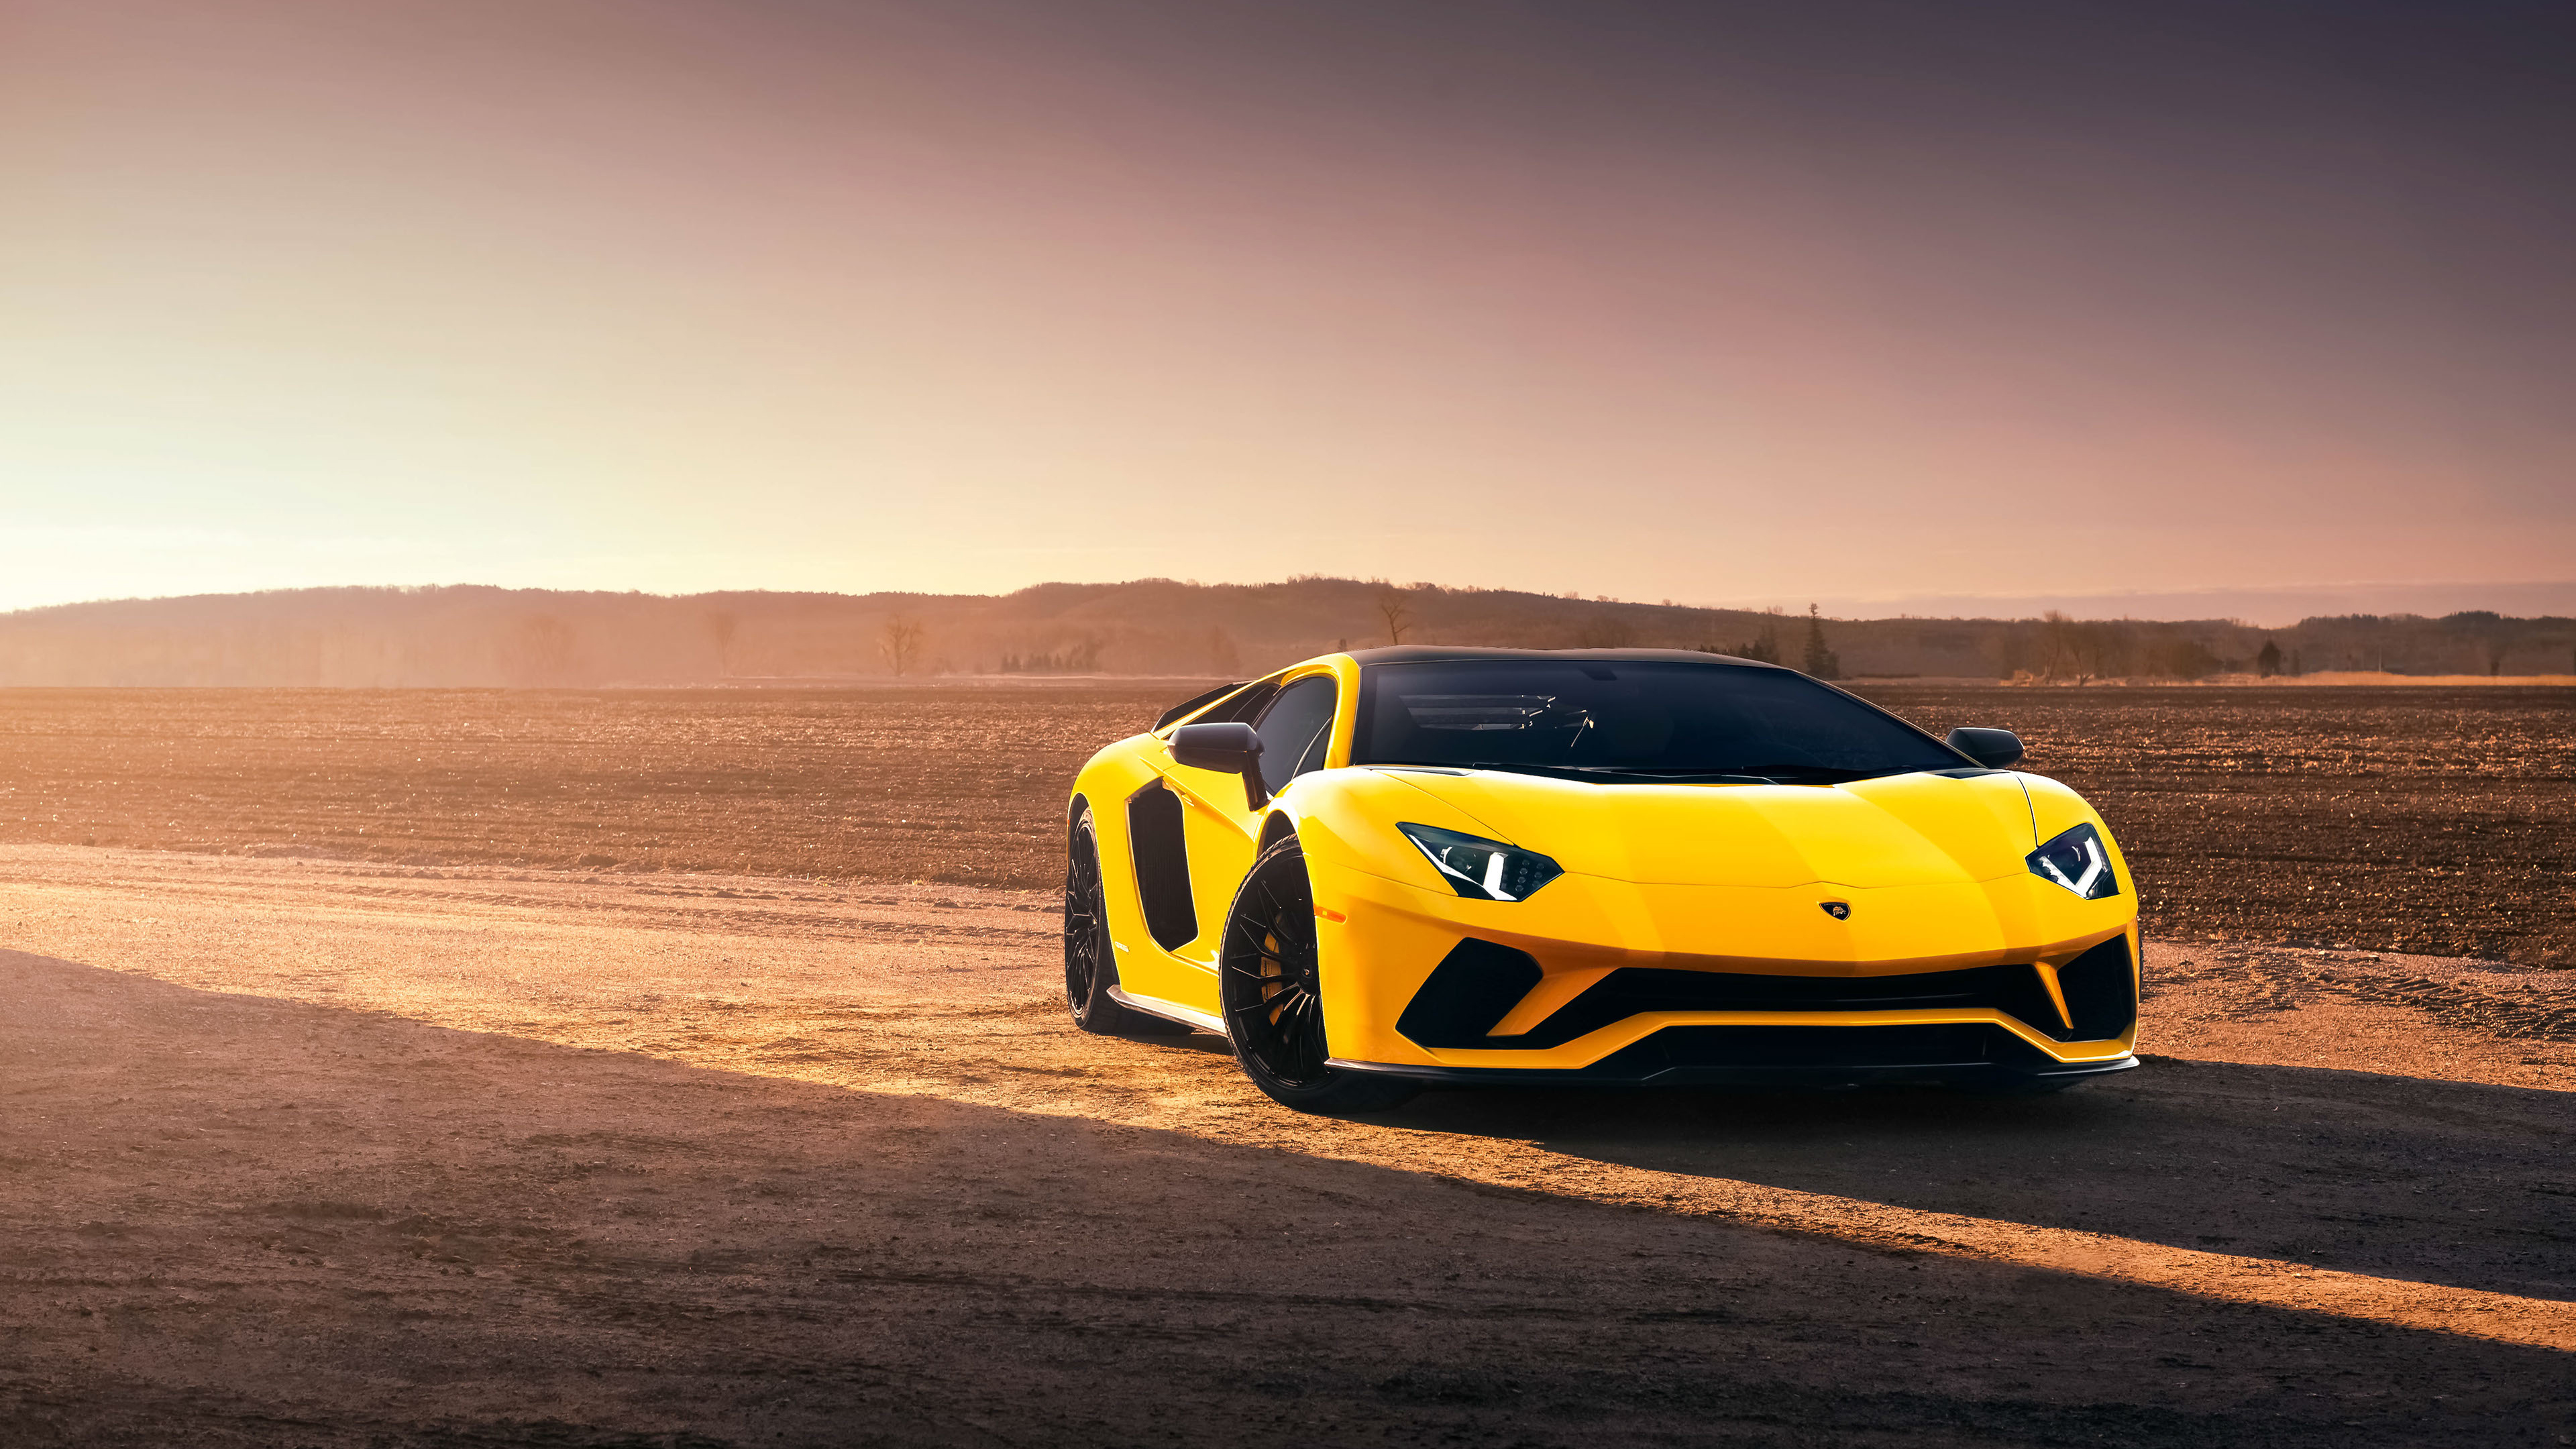 Lamborghini Aventador S 4k Ultra Hd Wallpaper Background